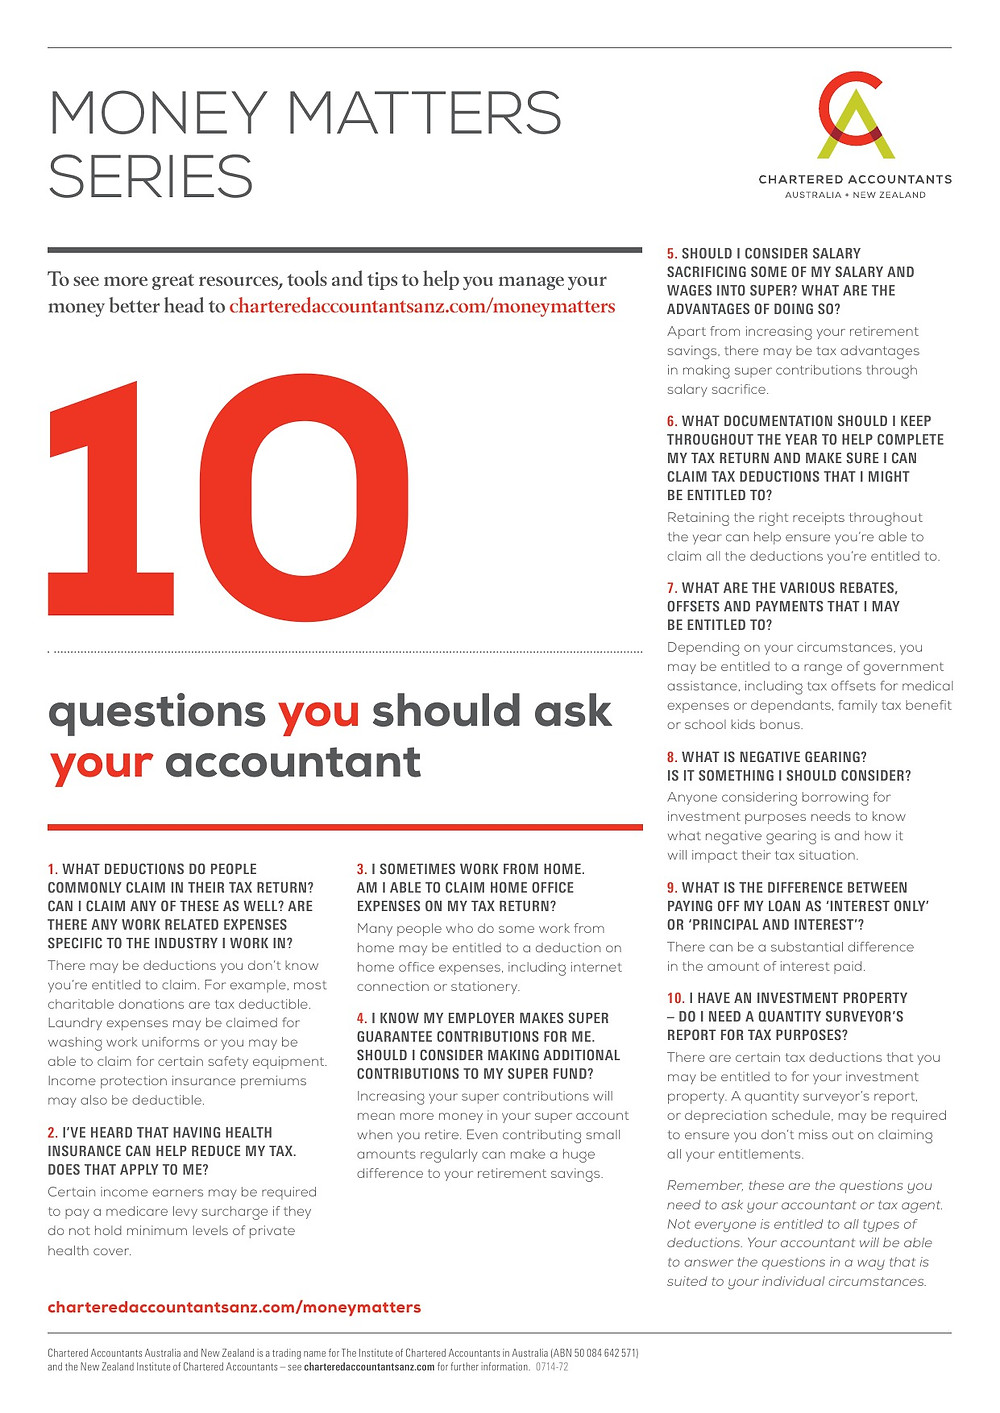 10 Questions you should ask your accountant.jpg